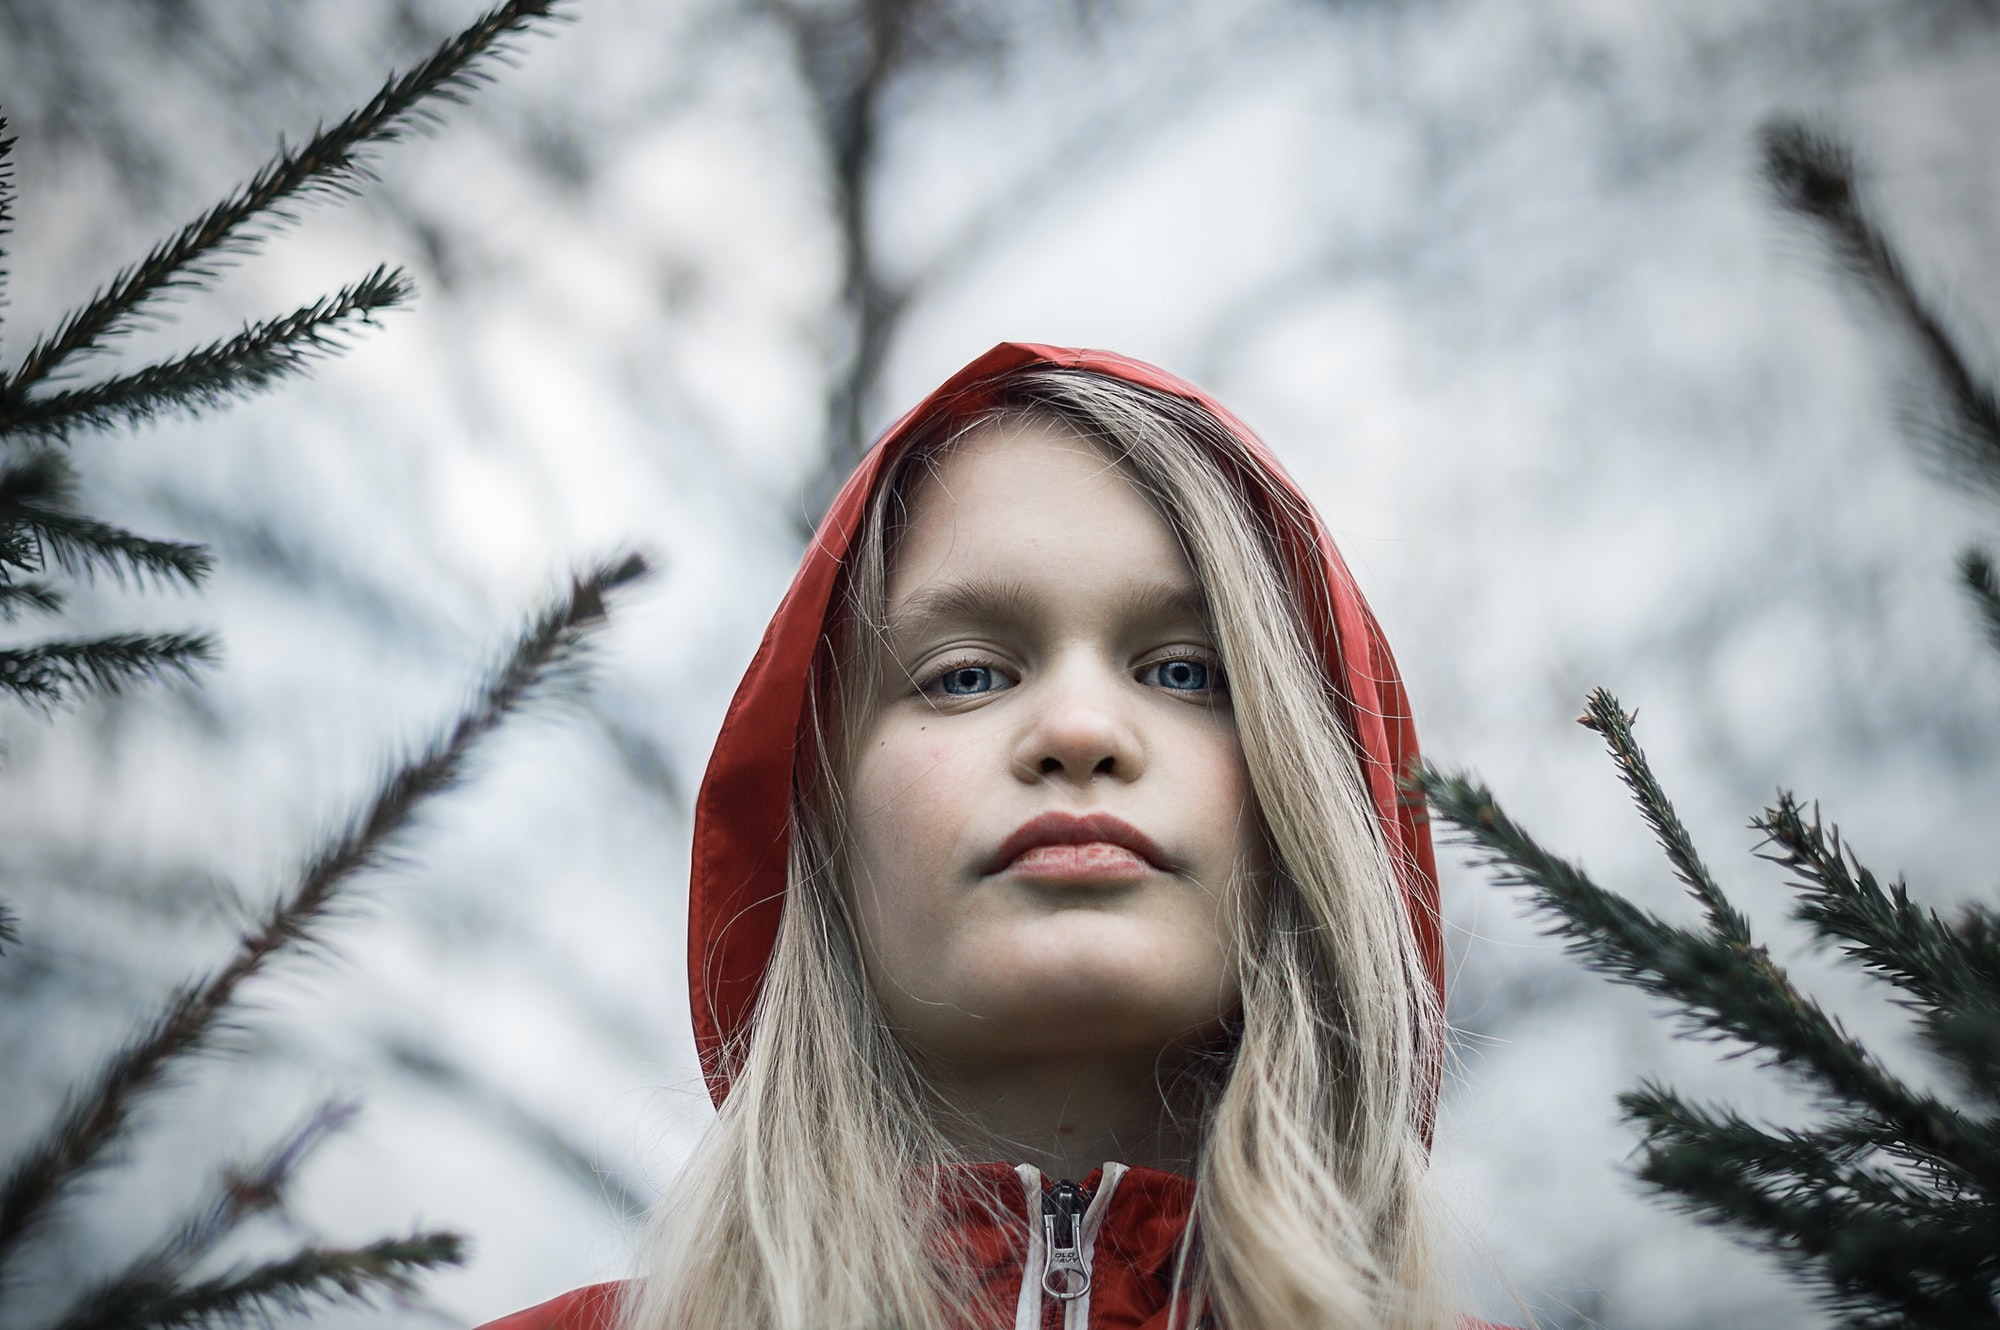 Portrait of the teenager in a red jacket